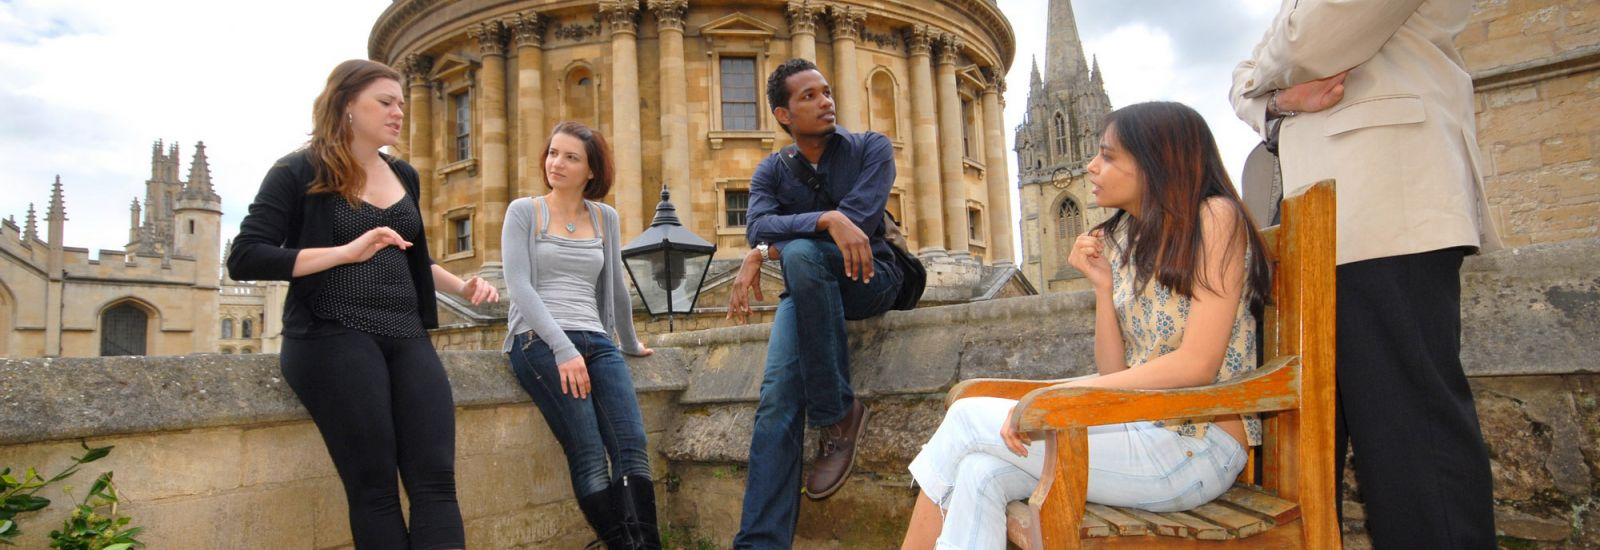 Group of graduate students chatting in Exeter College Fellows' Garden, Oxford, UK